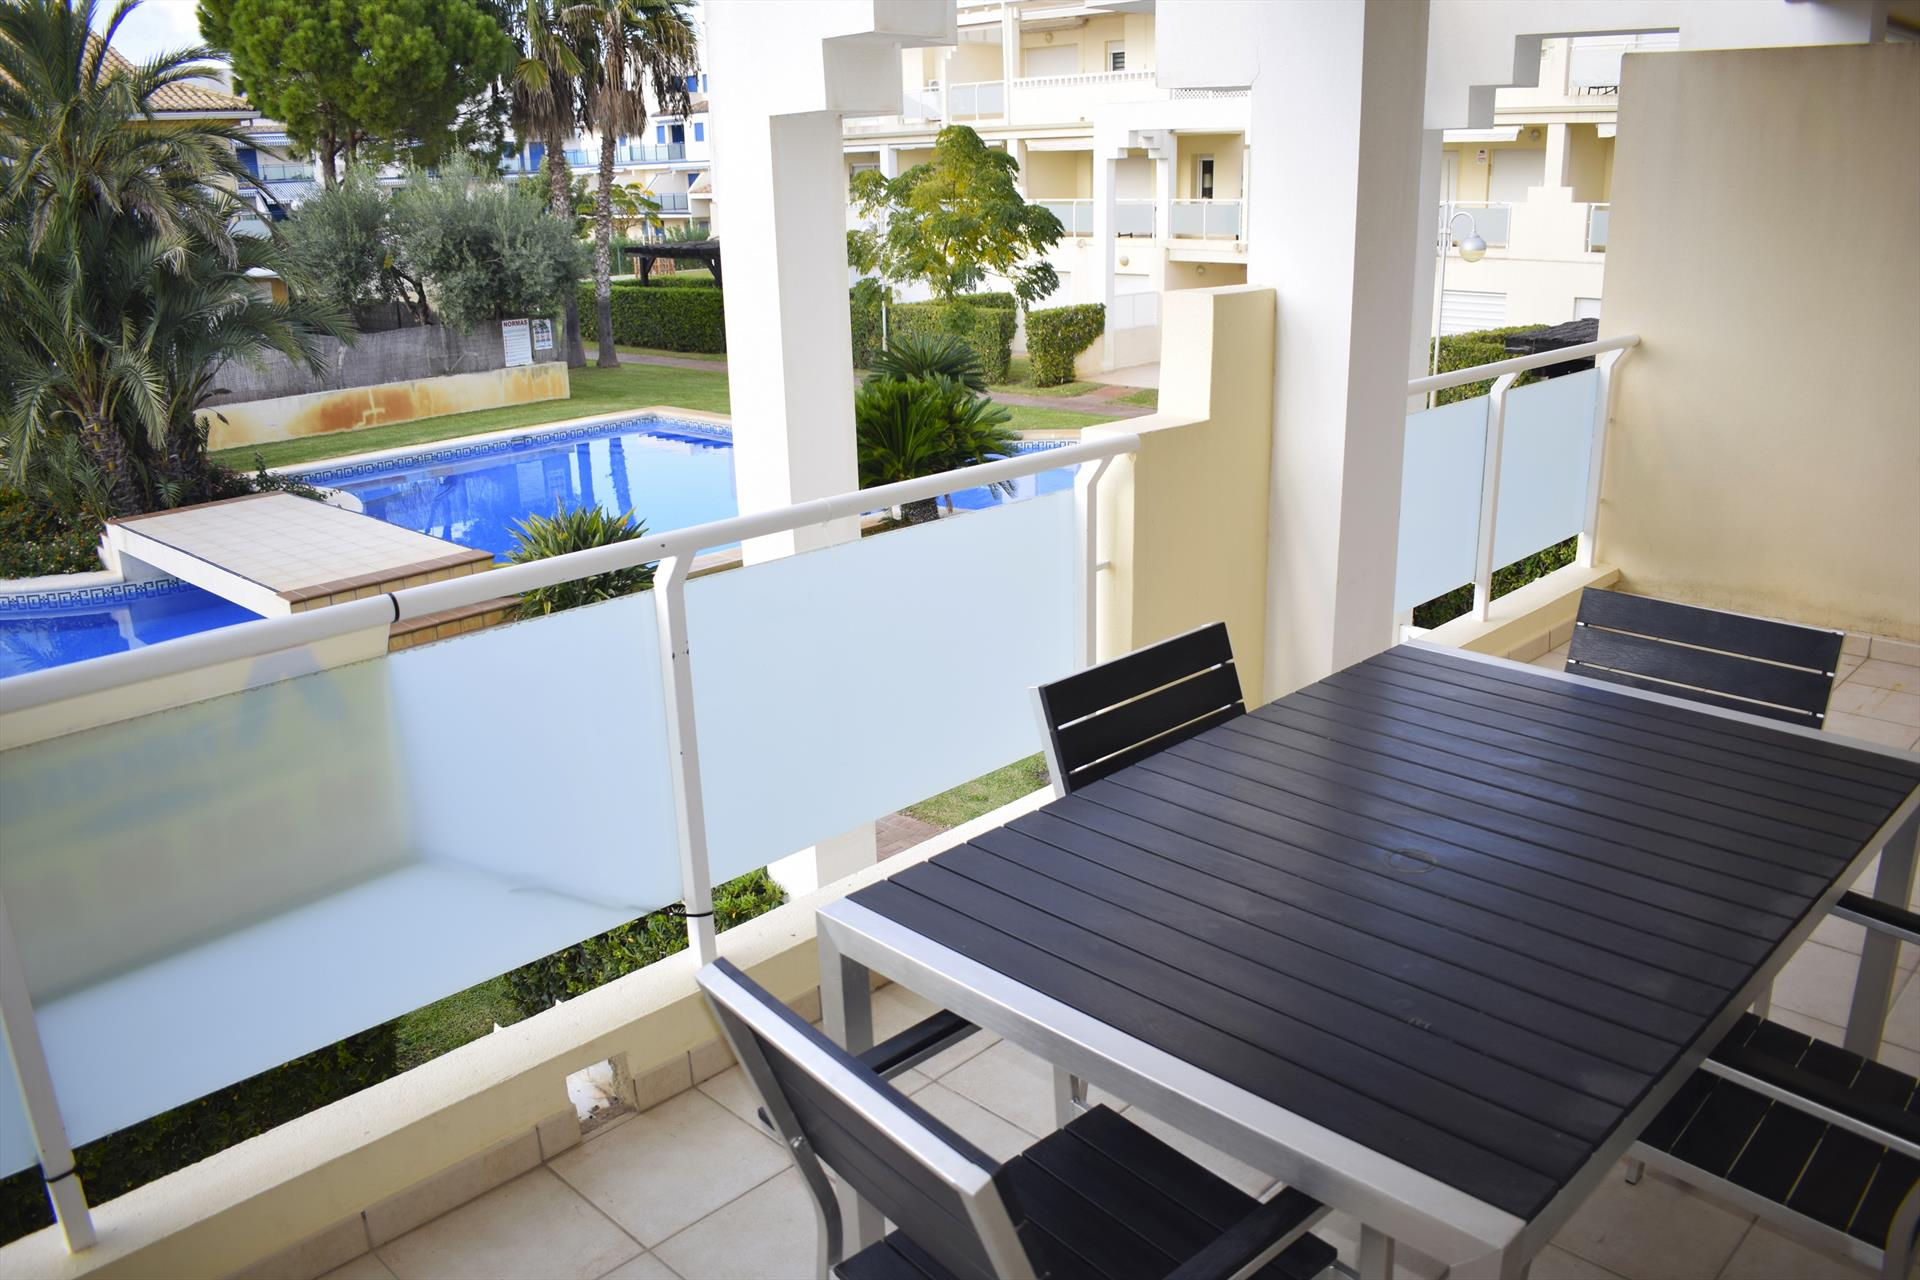 Vora Golf 3 Playa Rabdells DUP3027, Large and luxury apartment in Oliva, on the Costa Blanca, Spain  with communal pool for 6 persons.....